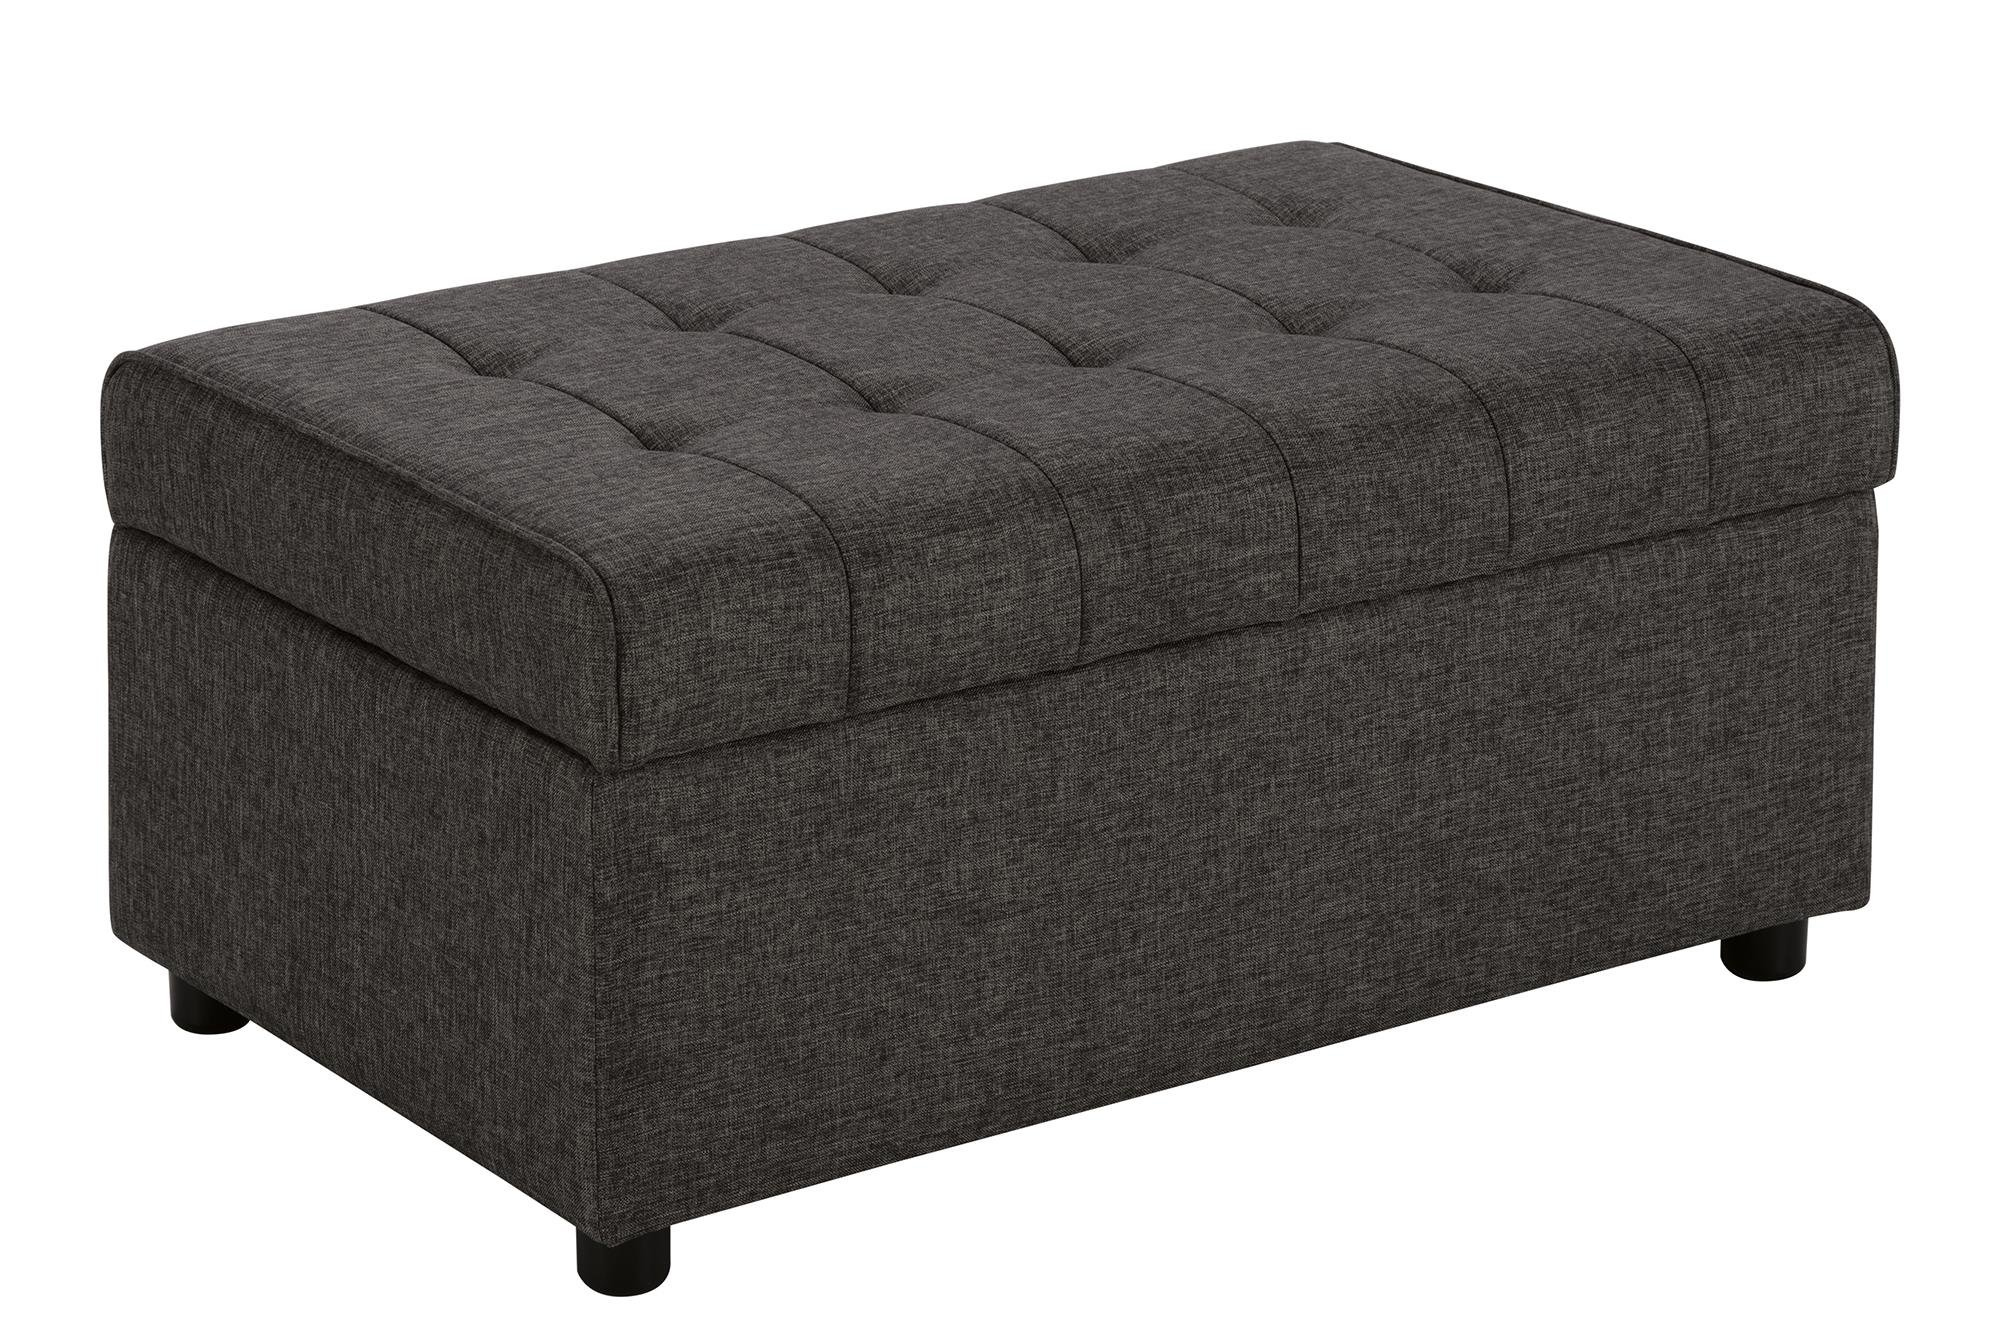 DHP Emily Rectangular Storage Ottoman, Modern Look with Tufted Design, Lightweight, Grey Linen by DHP